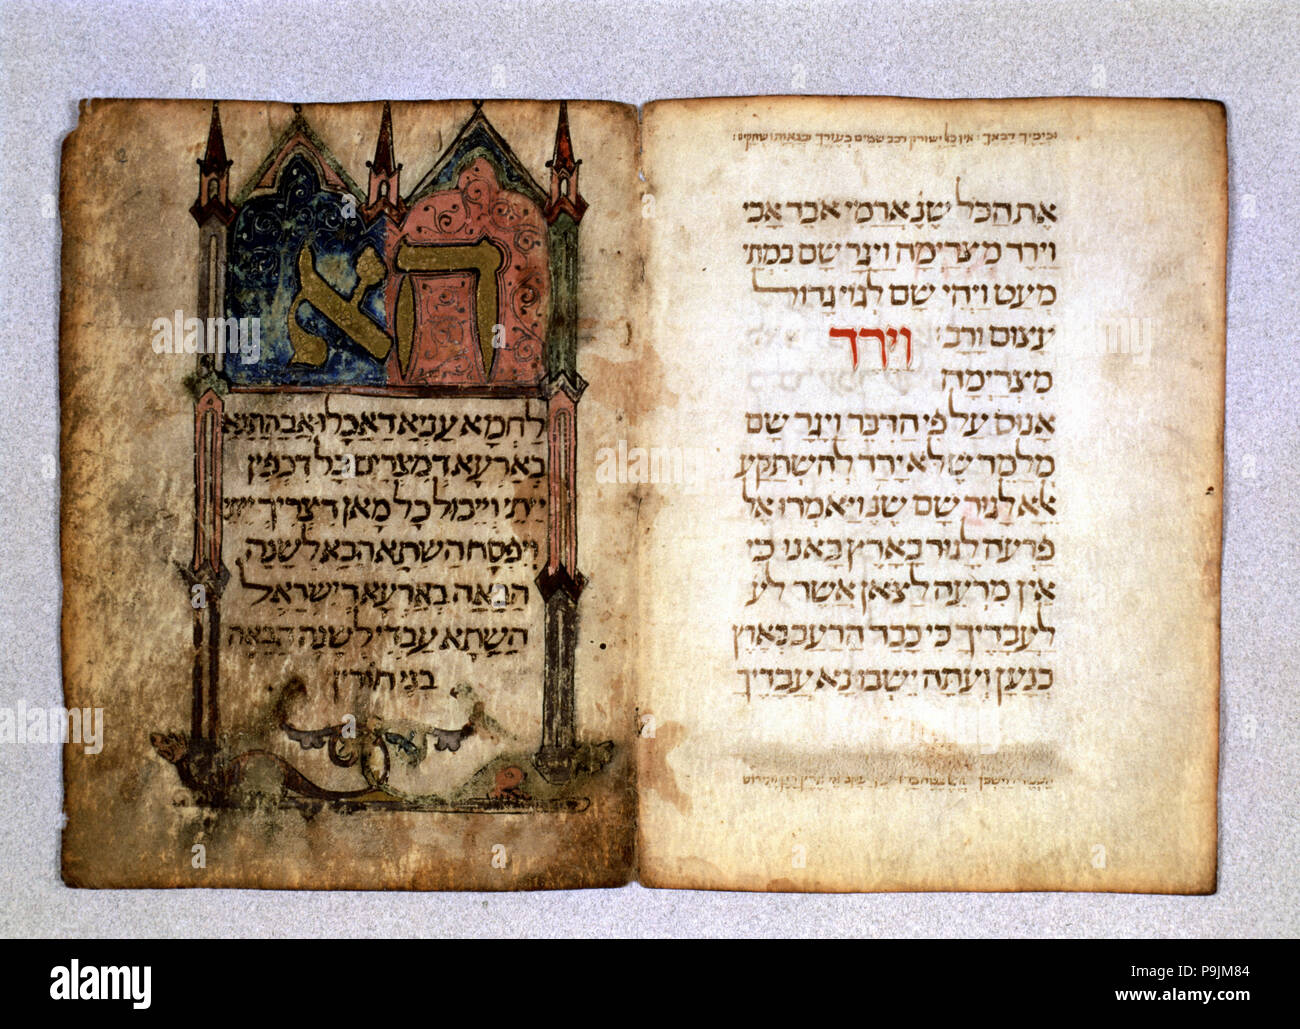 Haggadah of Poblet, illuminated manuscript of the Haggadah of Pesah that is part of the Talmud, codex banned by the Inquisition. Fol. 2: architectural - Stock Image